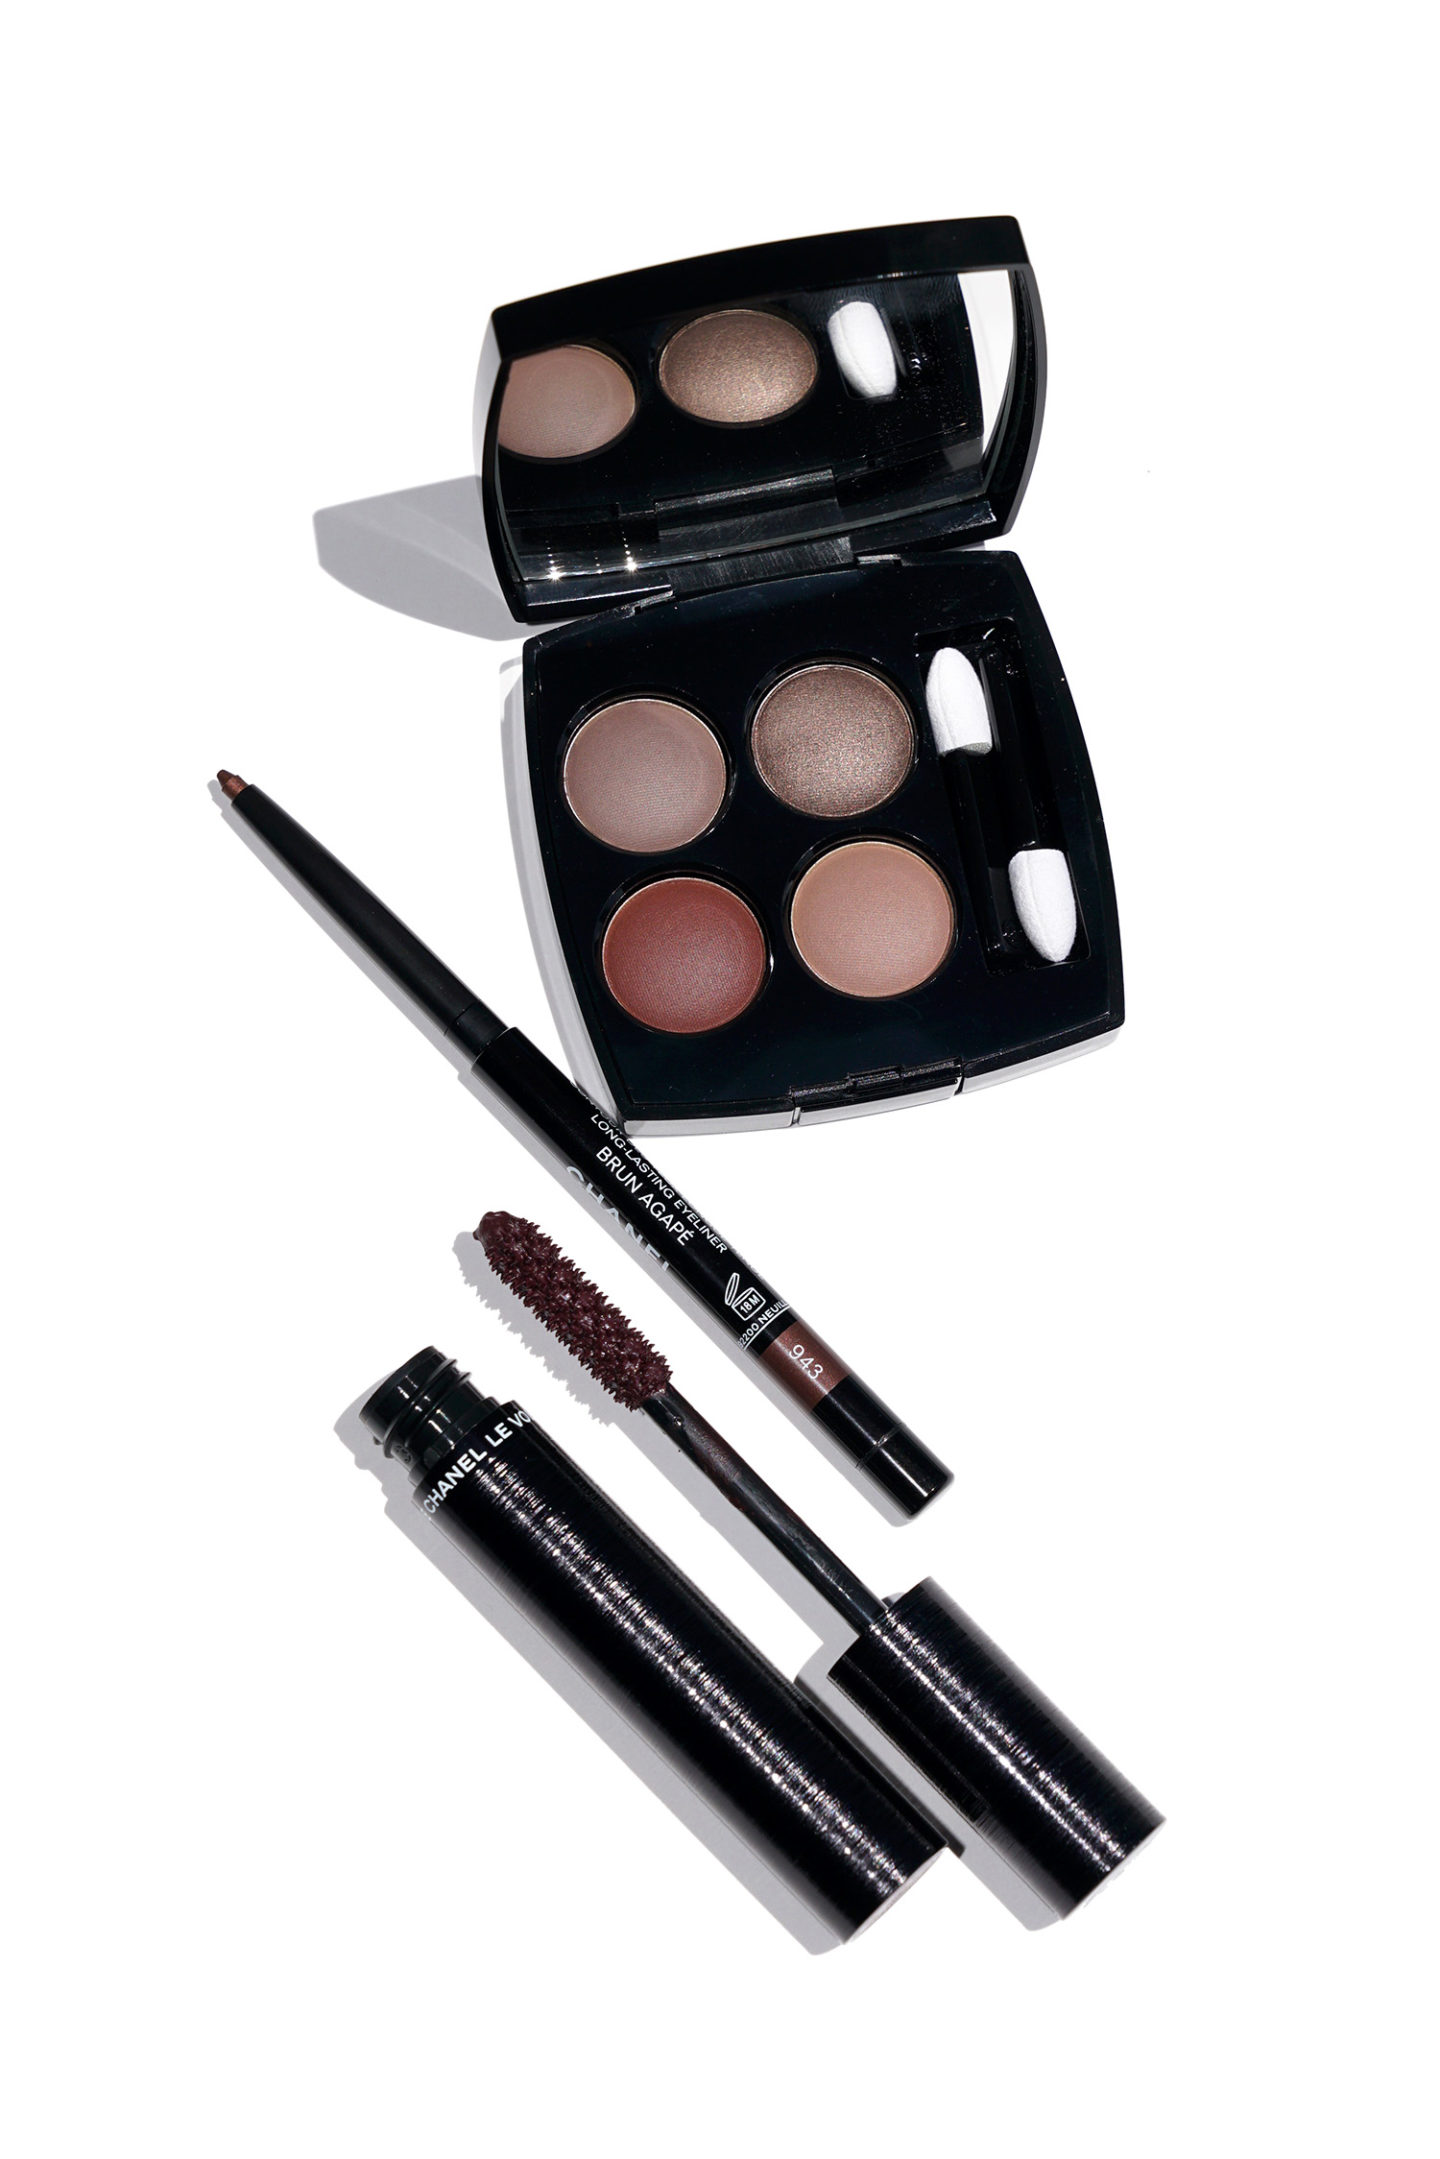 Chanel New Eye Collection Flou Mauve | Le look book beauté